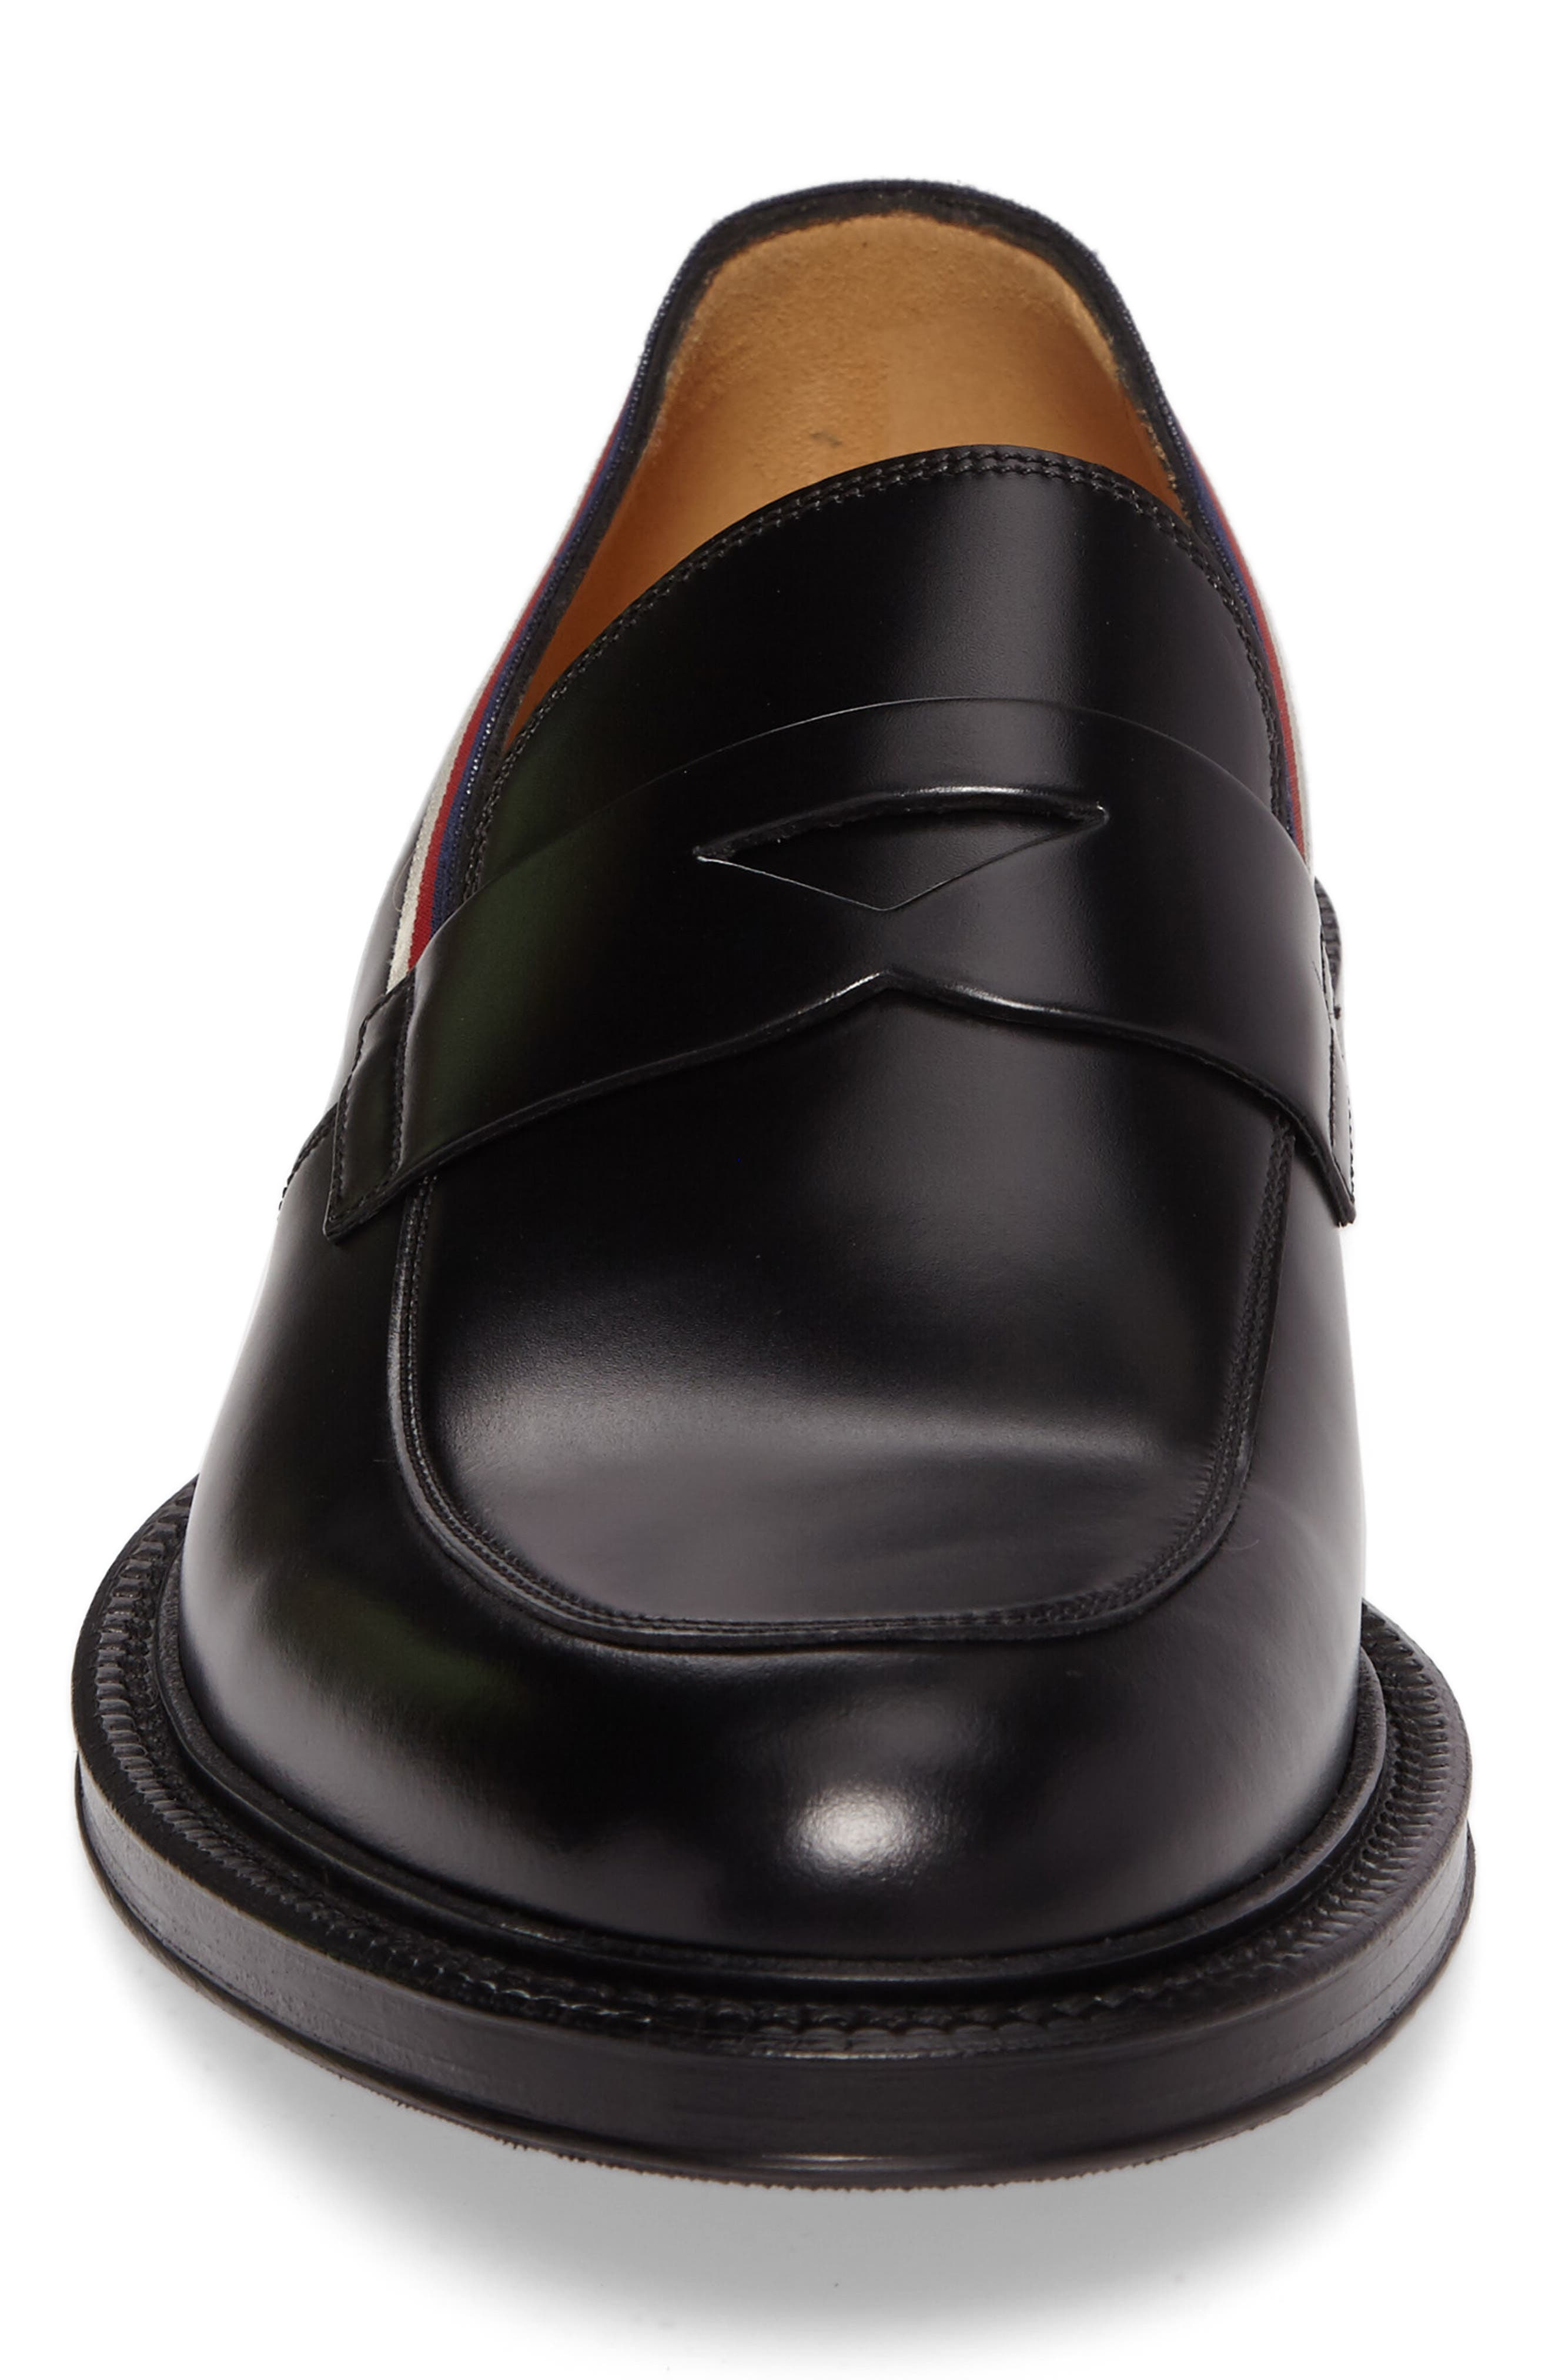 GUCCI,                             Beyond Penny Loafer,                             Alternate thumbnail 4, color,                             007